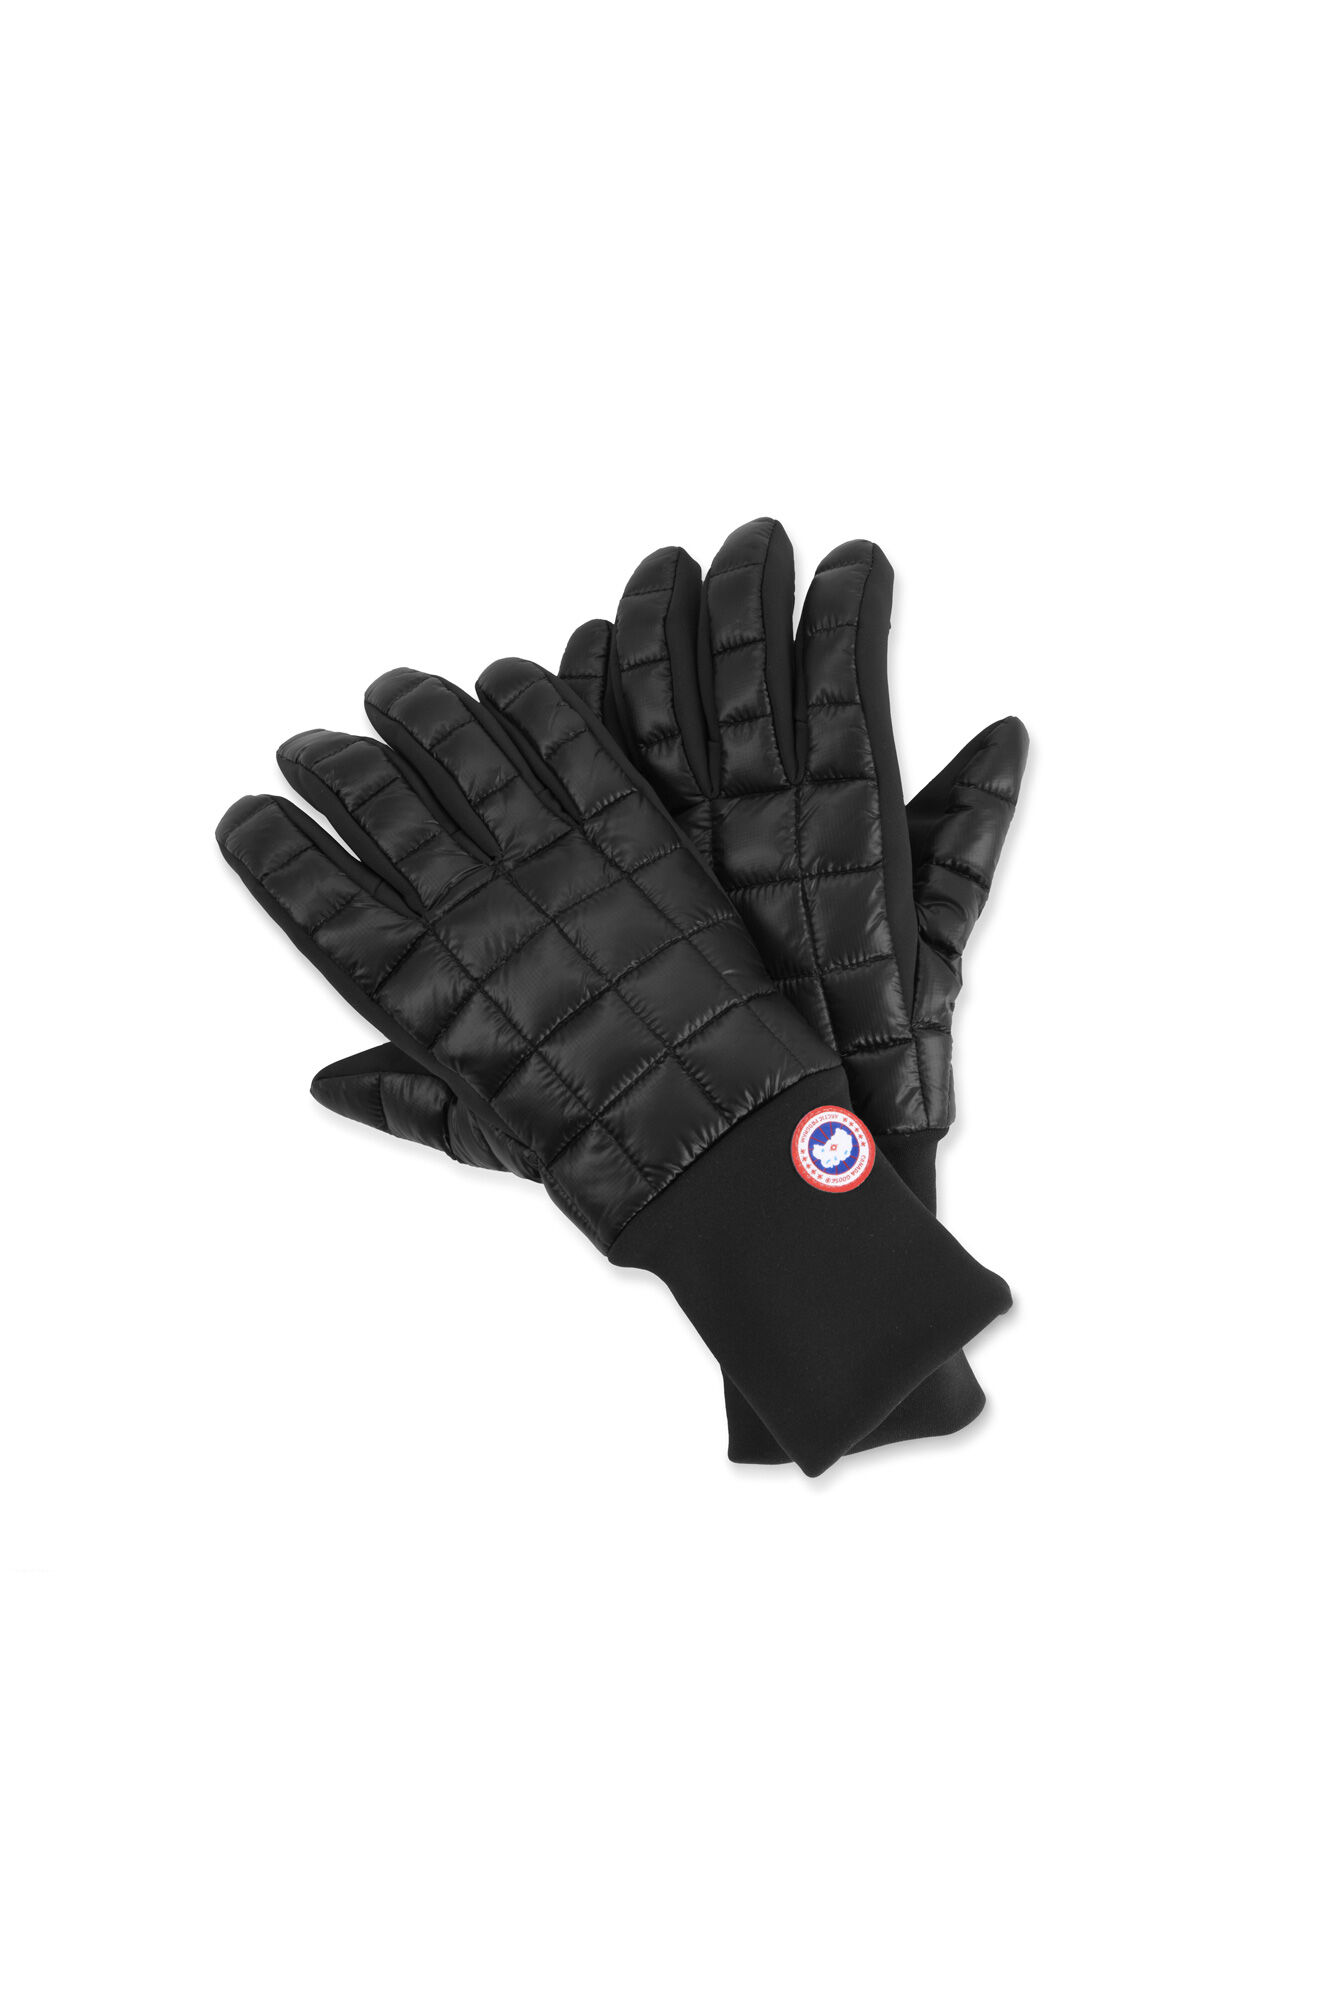 Canada Goose' down gloves